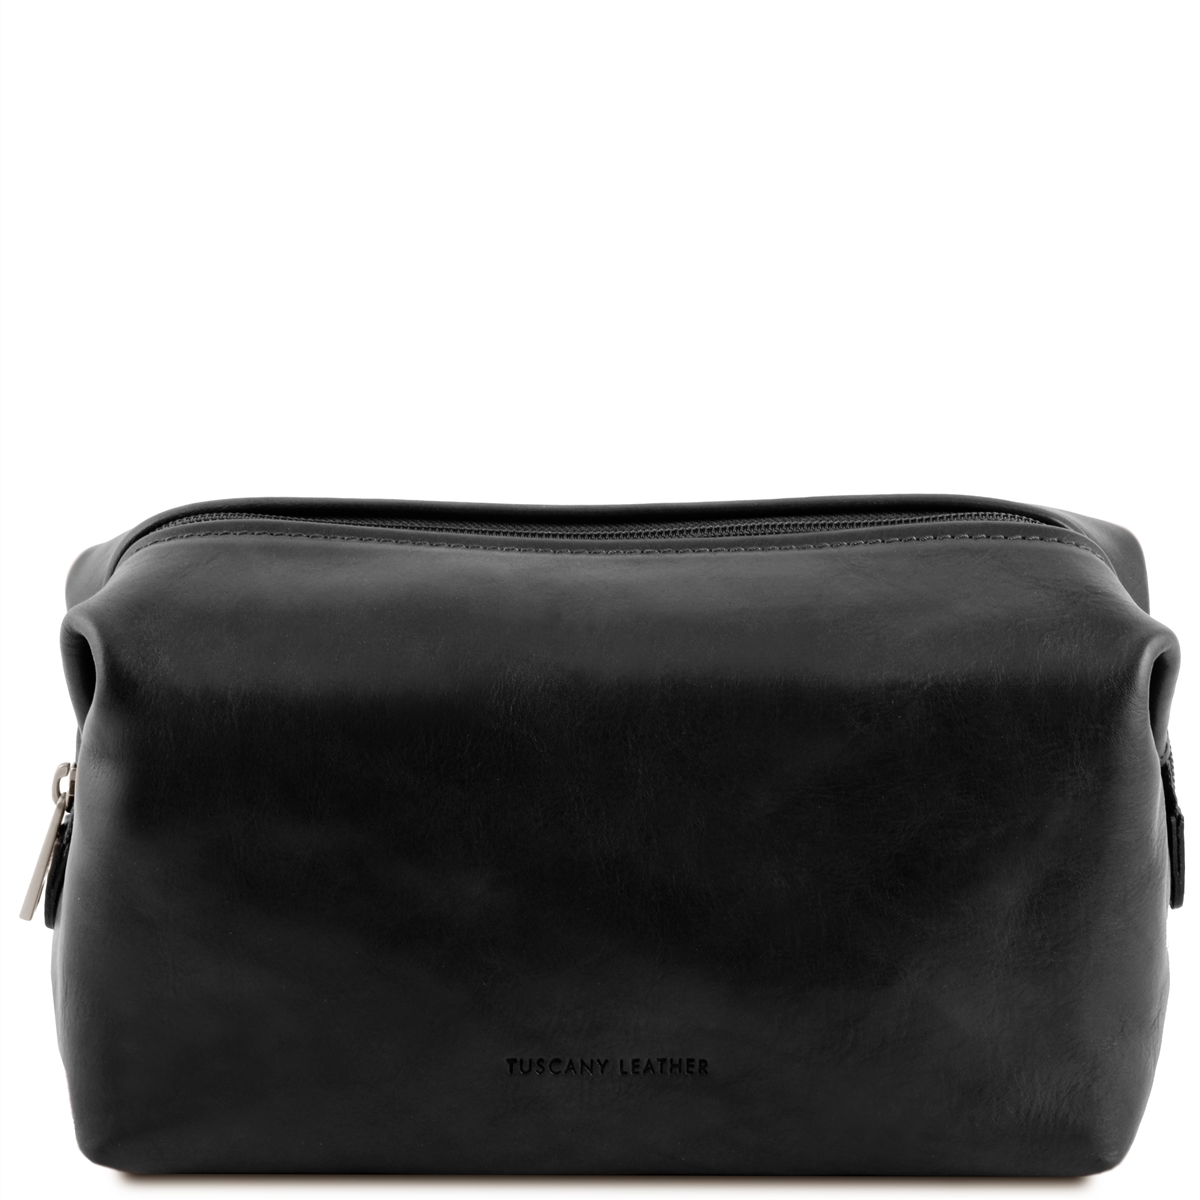 f169132e5f1d Tuscany Leather Smarty TL141219 - Large Leather Toilet Bag - Black